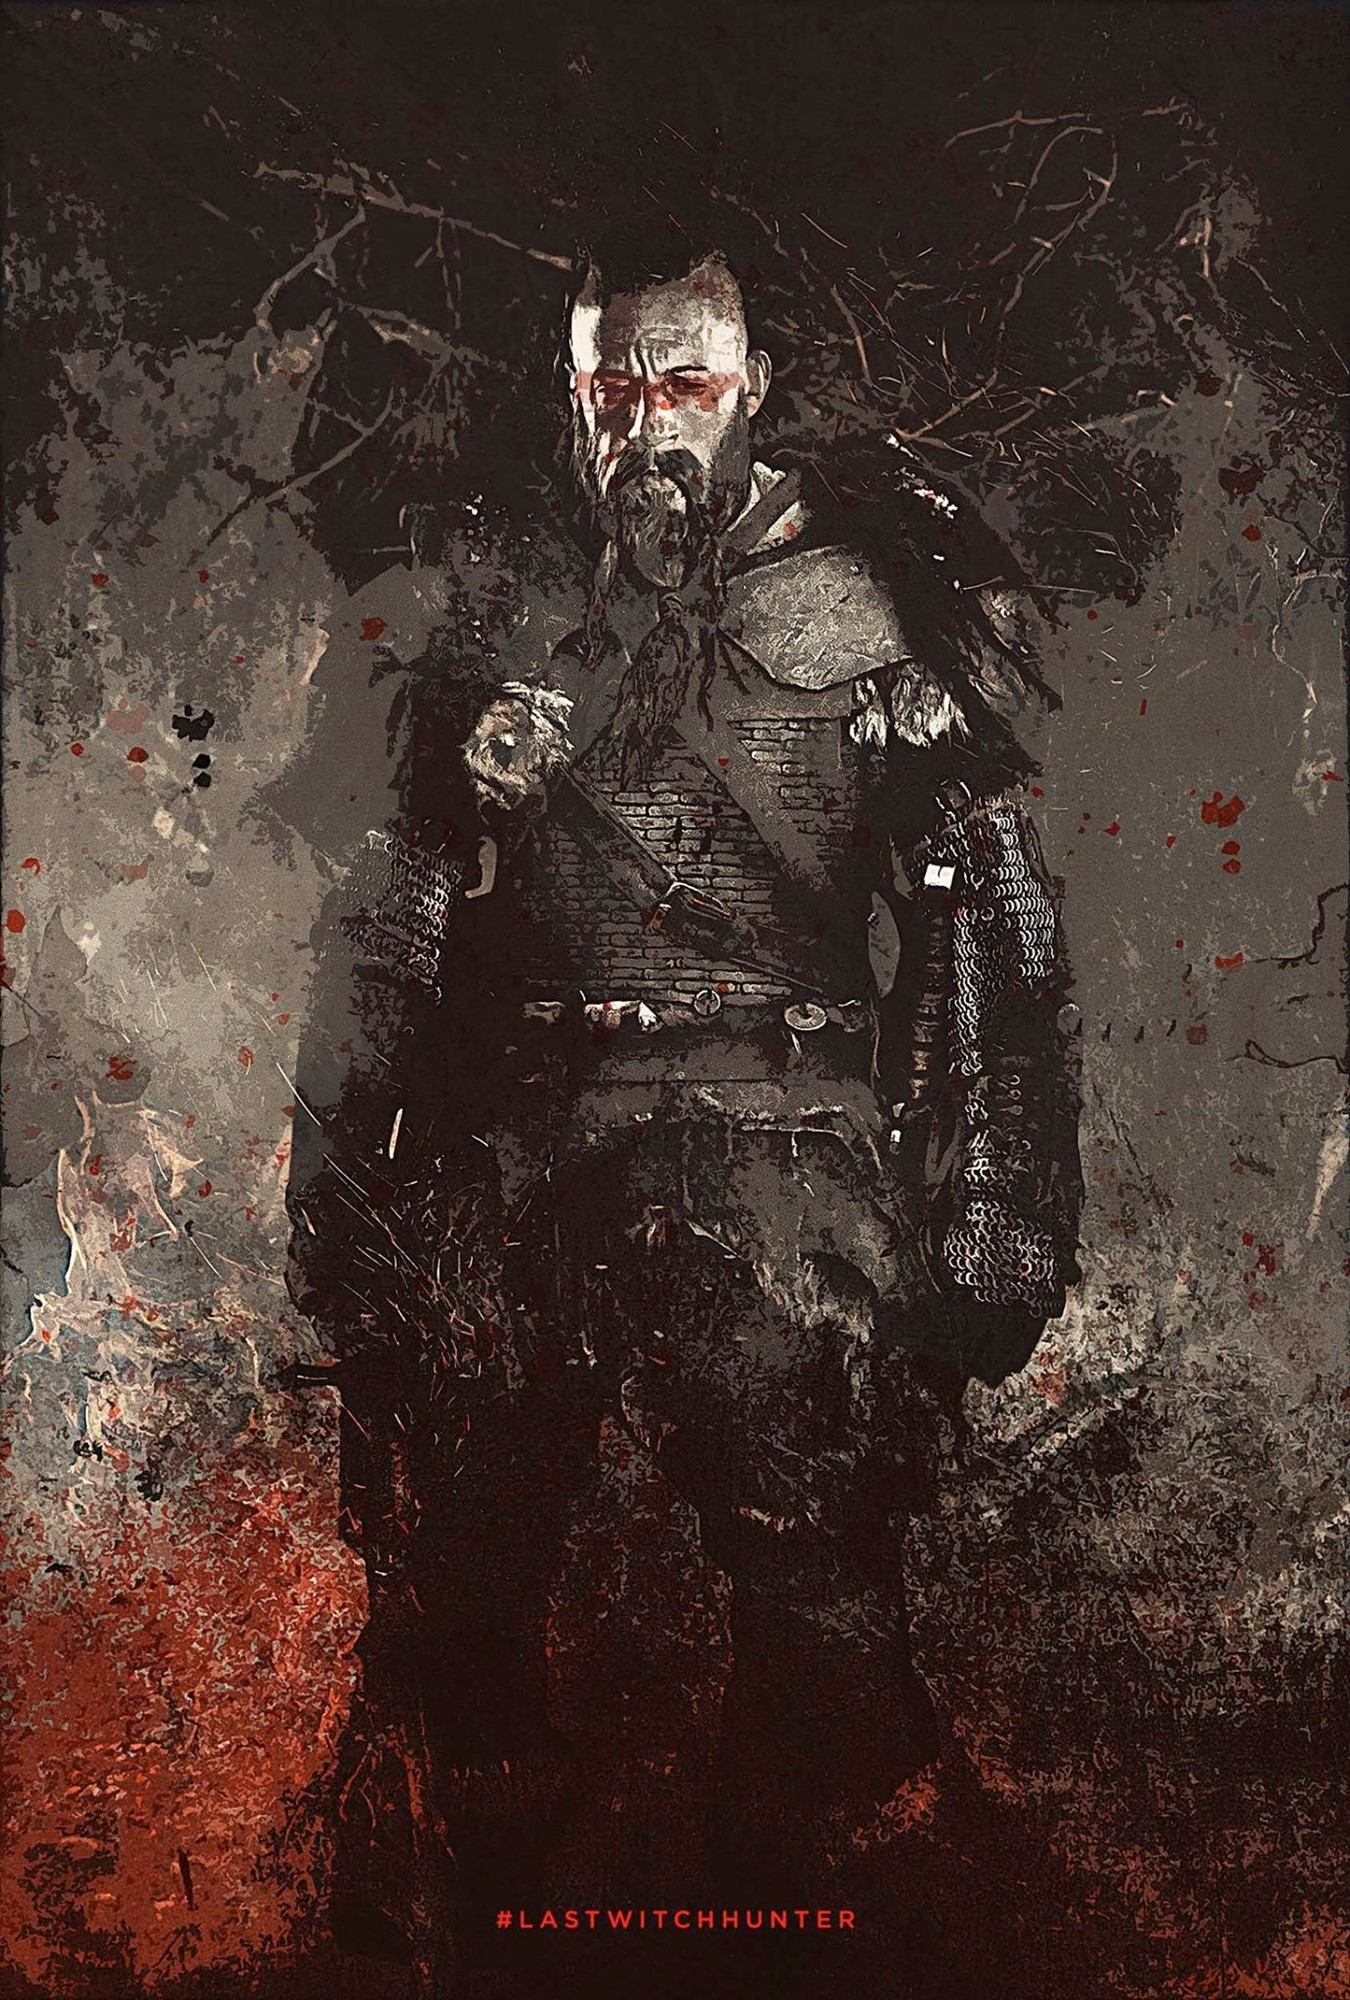 Poster of Summit Entertainment's The Last Witch Hunter (2015)